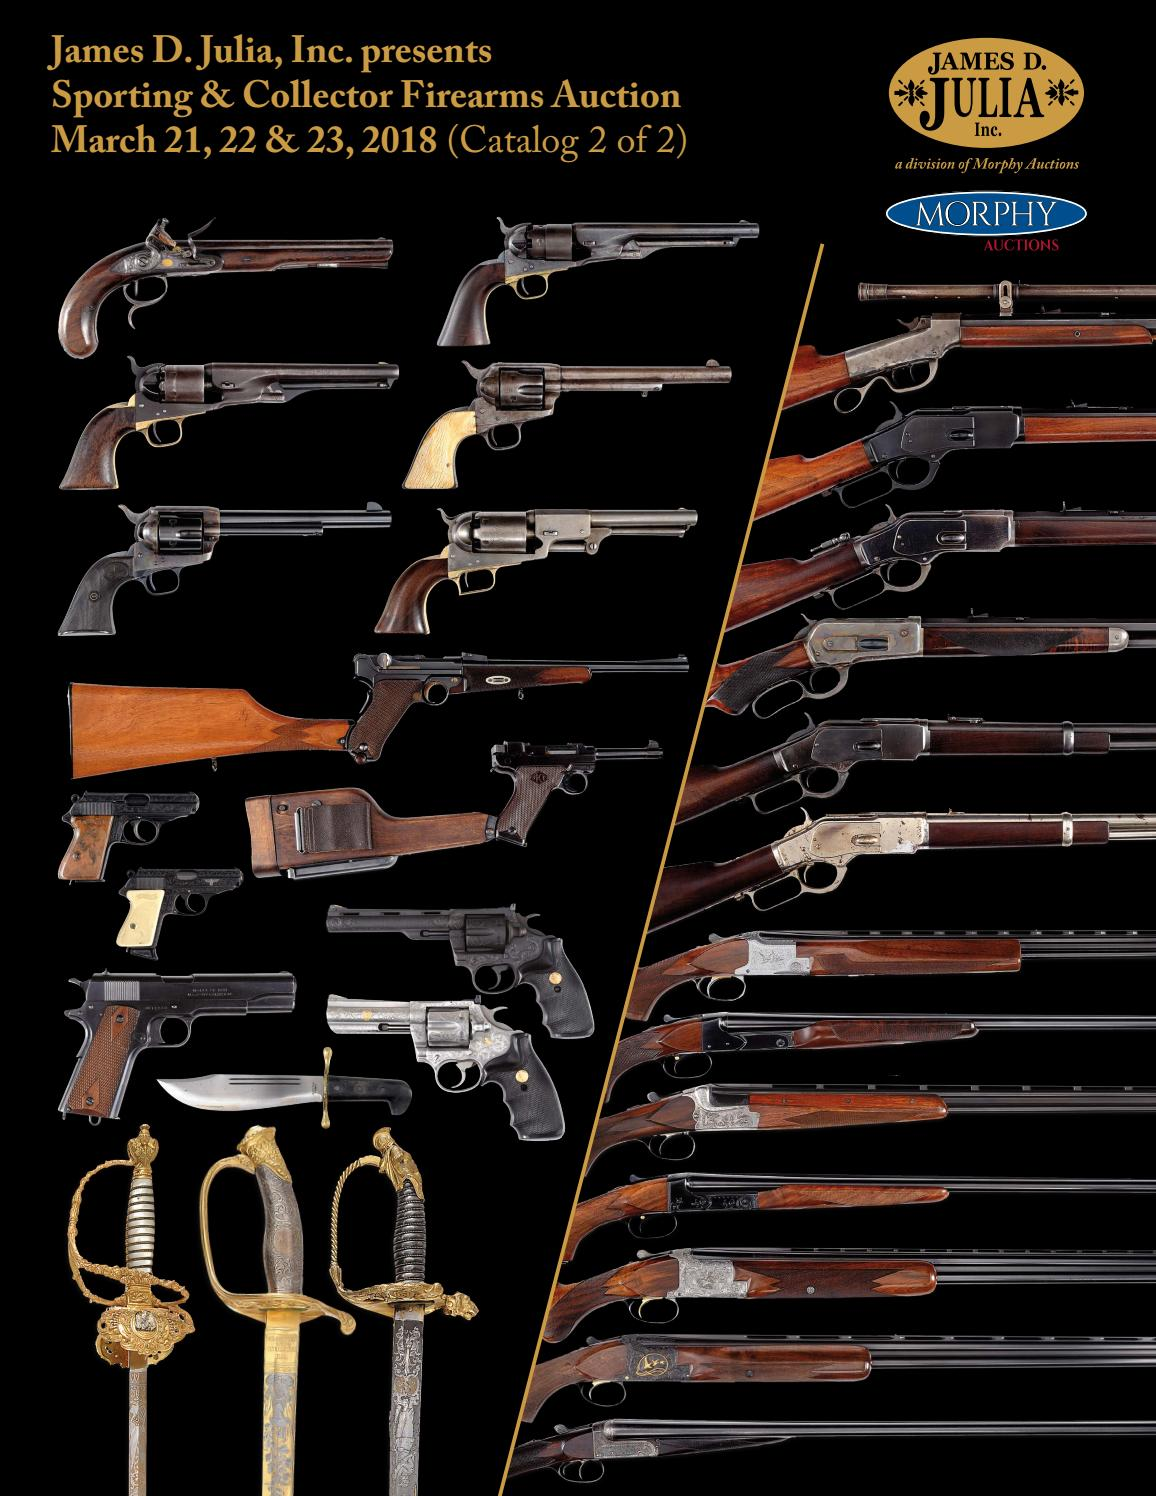 James D  Julia's Sporting & Collector Firearms Auction by James D